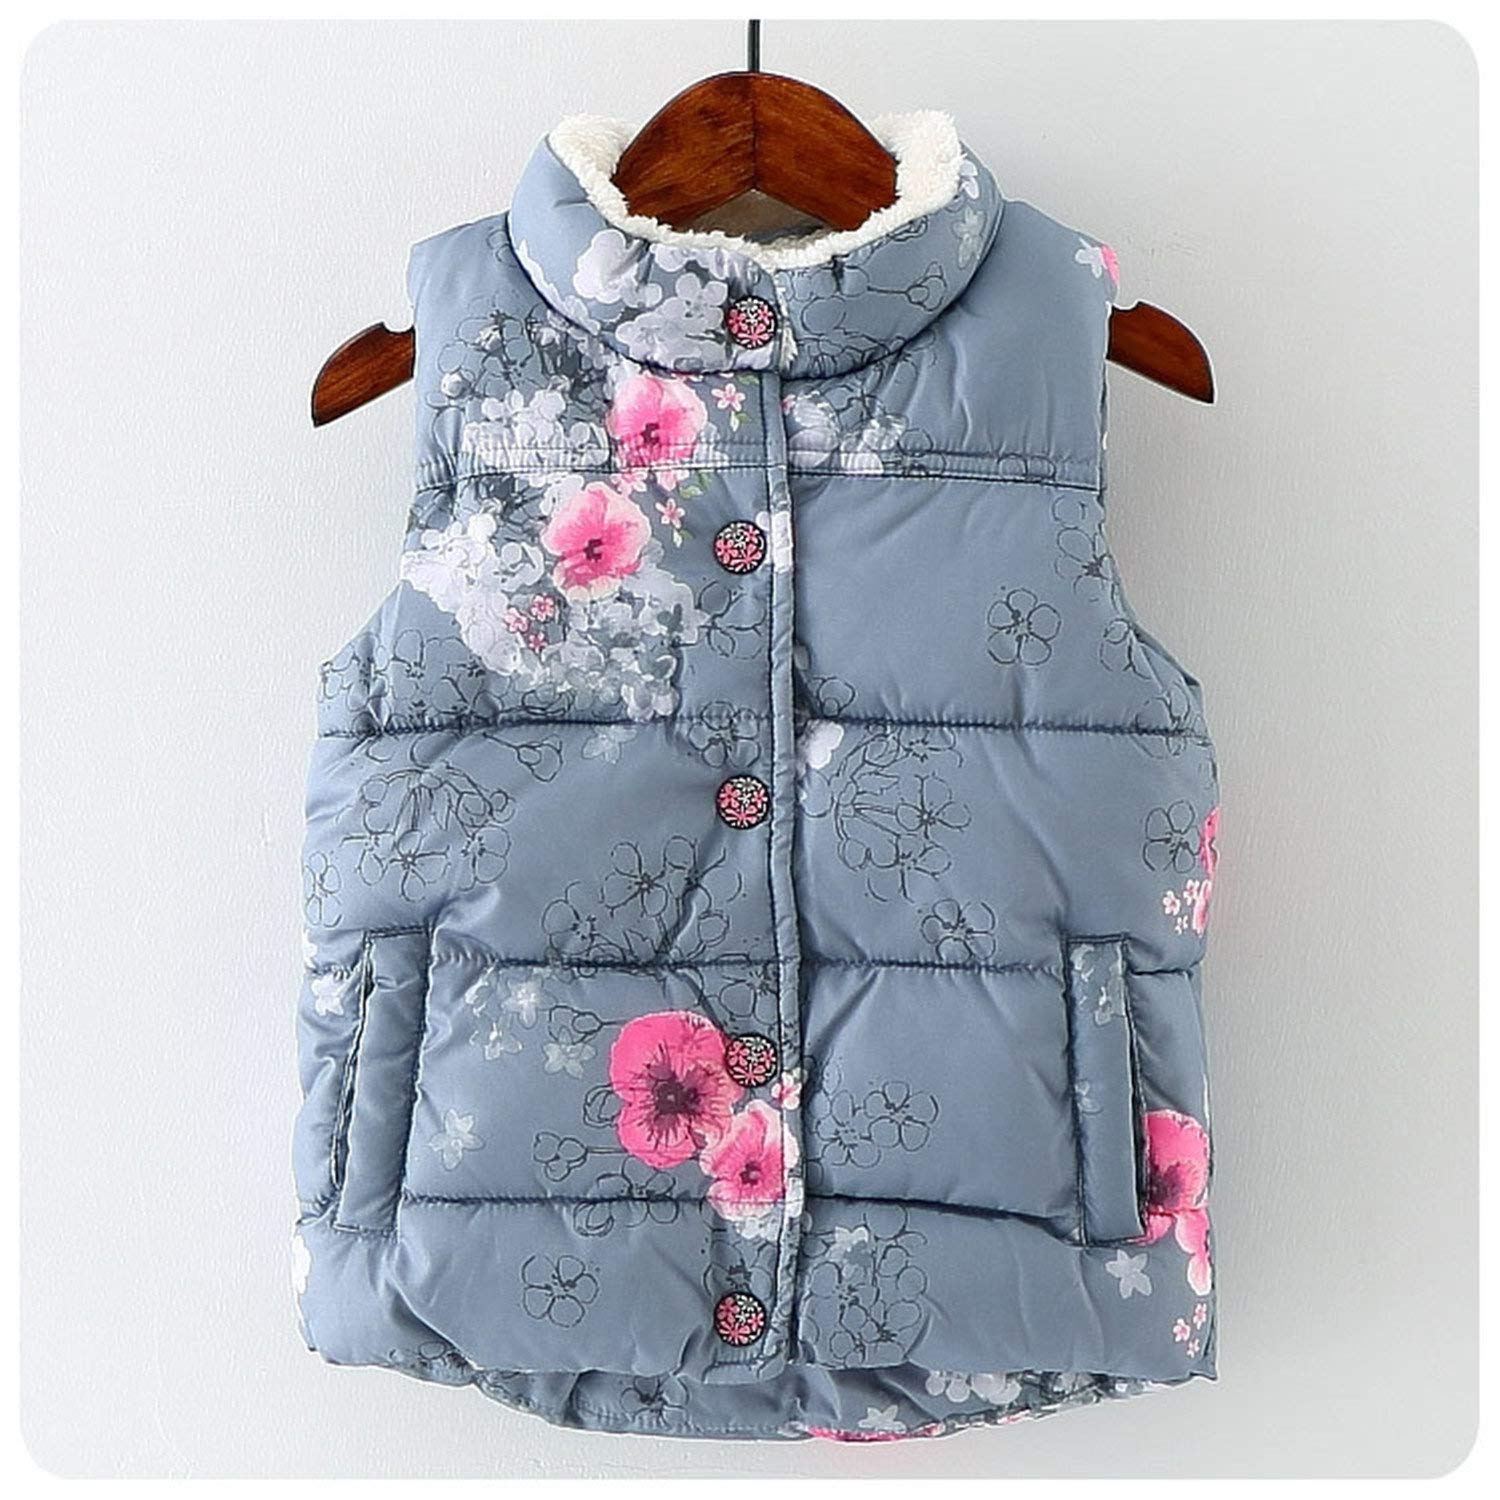 Londony ♪❤ Clearance Sales,Baby Girls Toddler Boys Infant Reversible Zip Up Warm Winter Coats Fleece Jacket